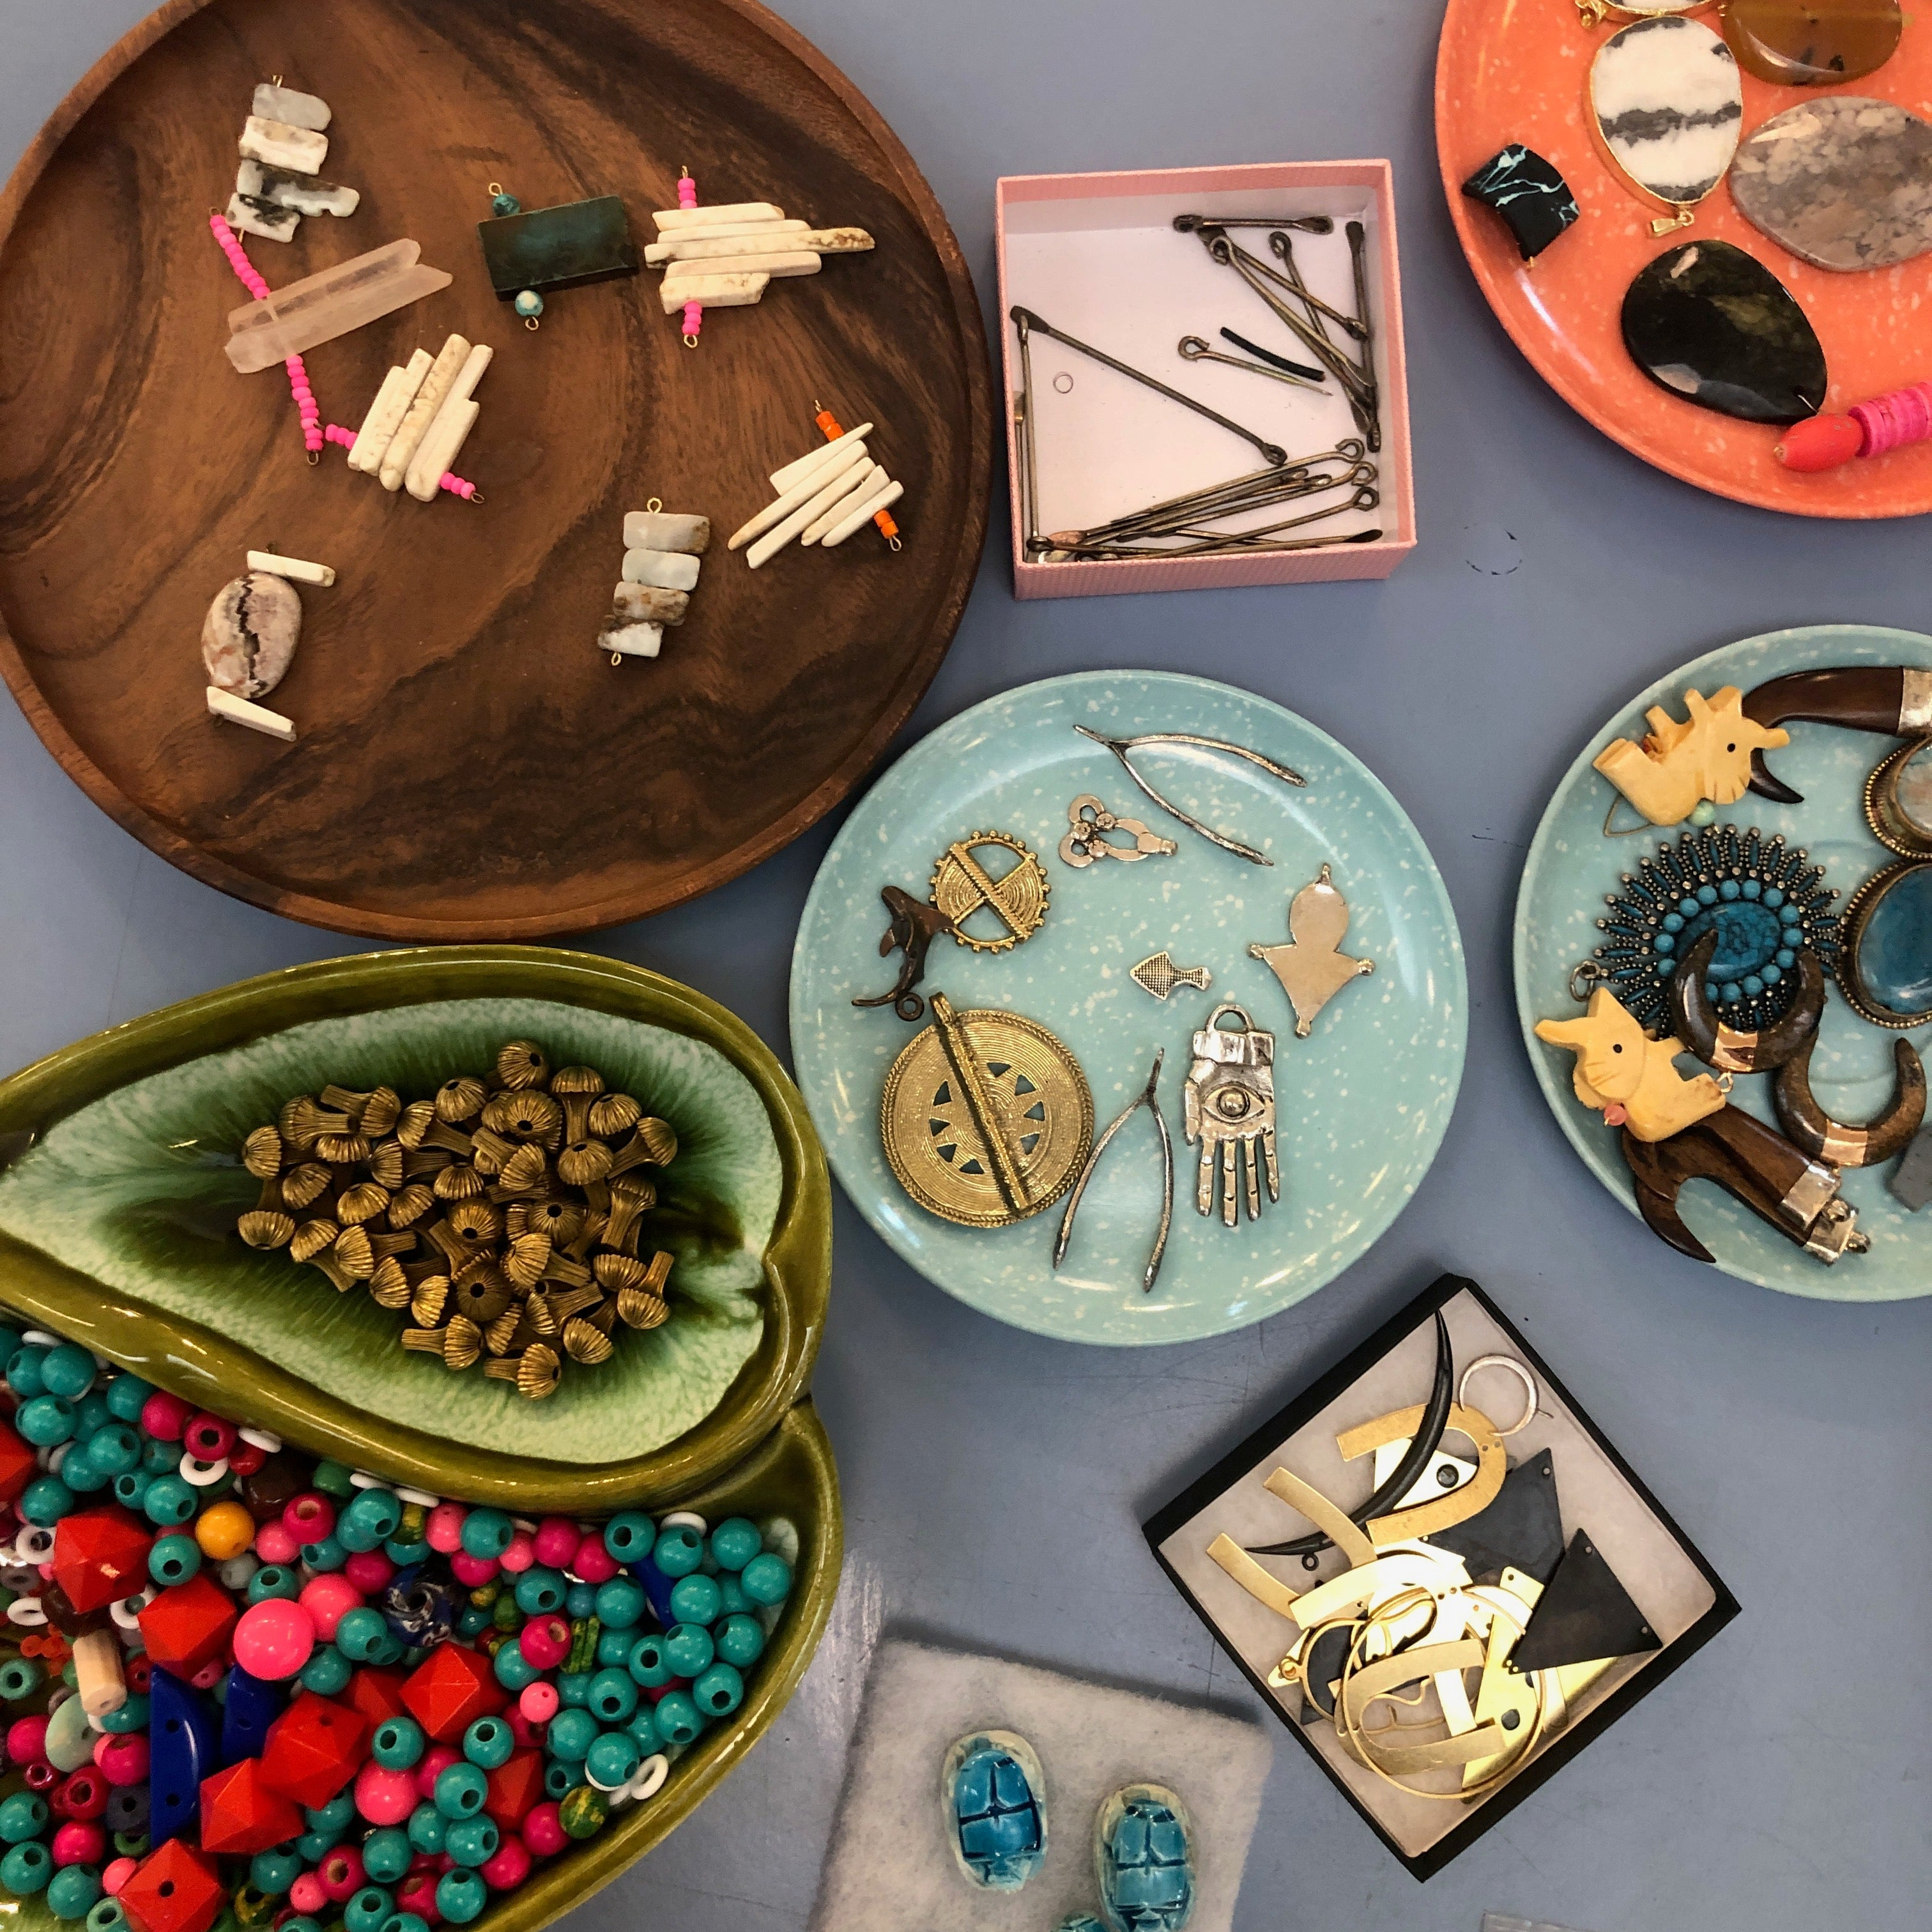 11/21 Jewelry Workshop: Custom Beads + Assemblage with Fate & Coincidence on Thursday November 21 at 7pm